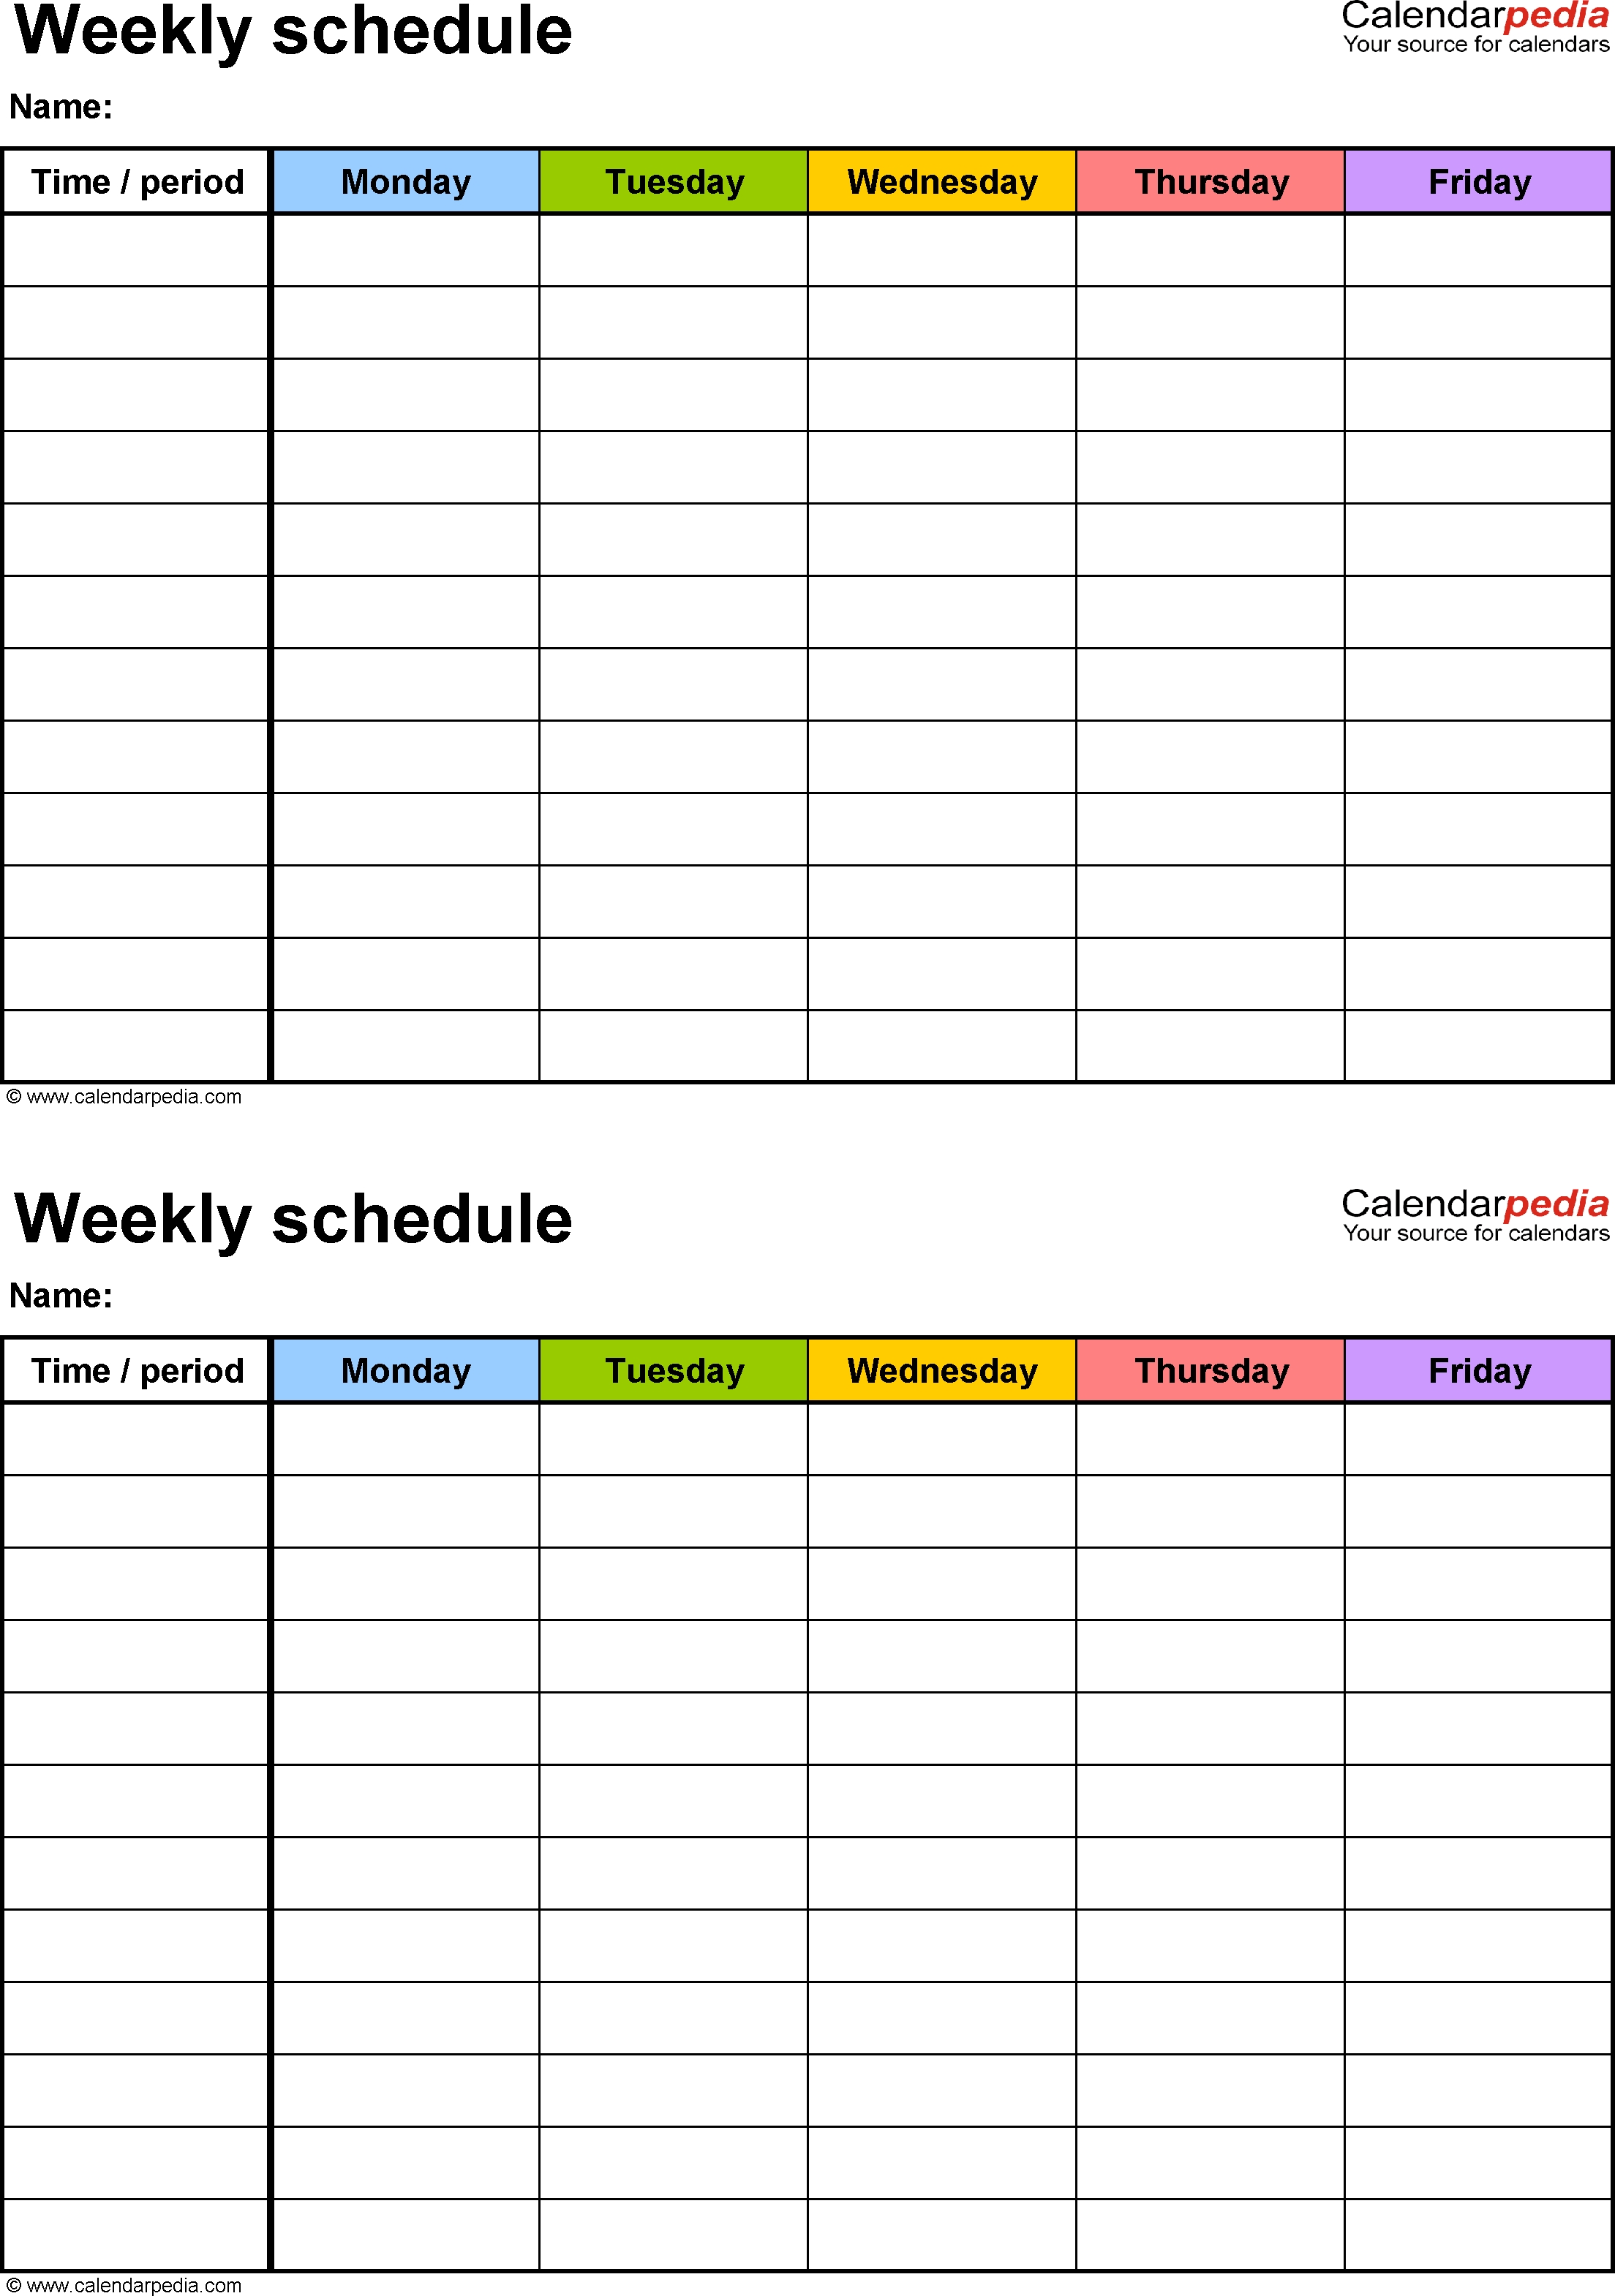 Free Weekly Schedule Templates For Word - 18 Templates pertaining to Printable Weekly Schedule Monday Thru Friday